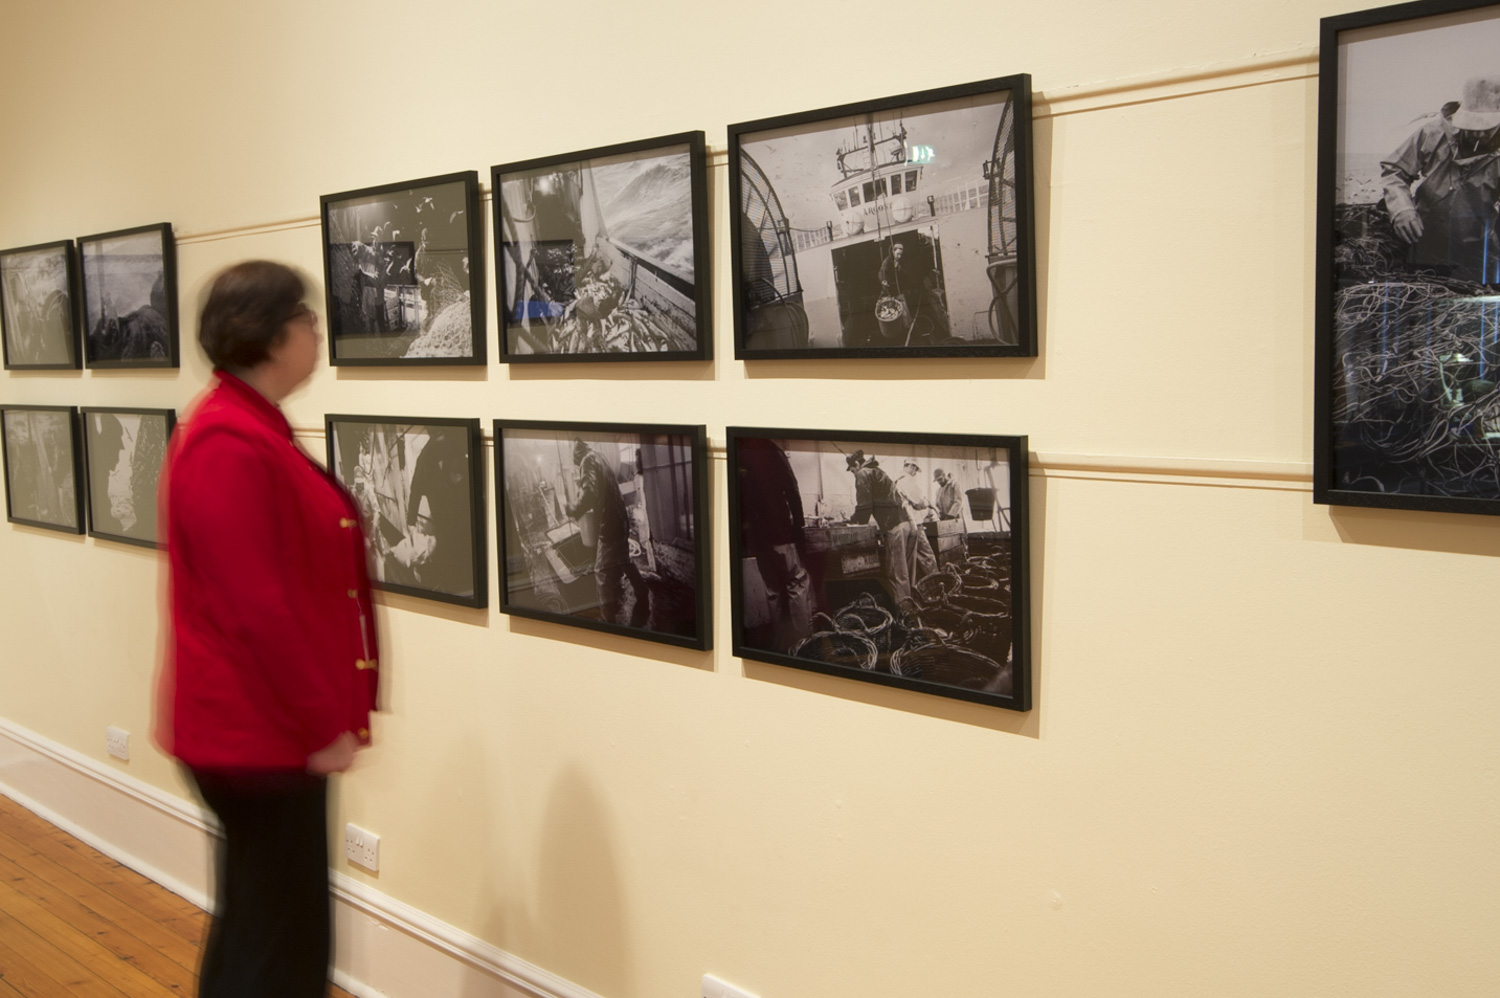 lady looking at a series of framed prints on a wall.